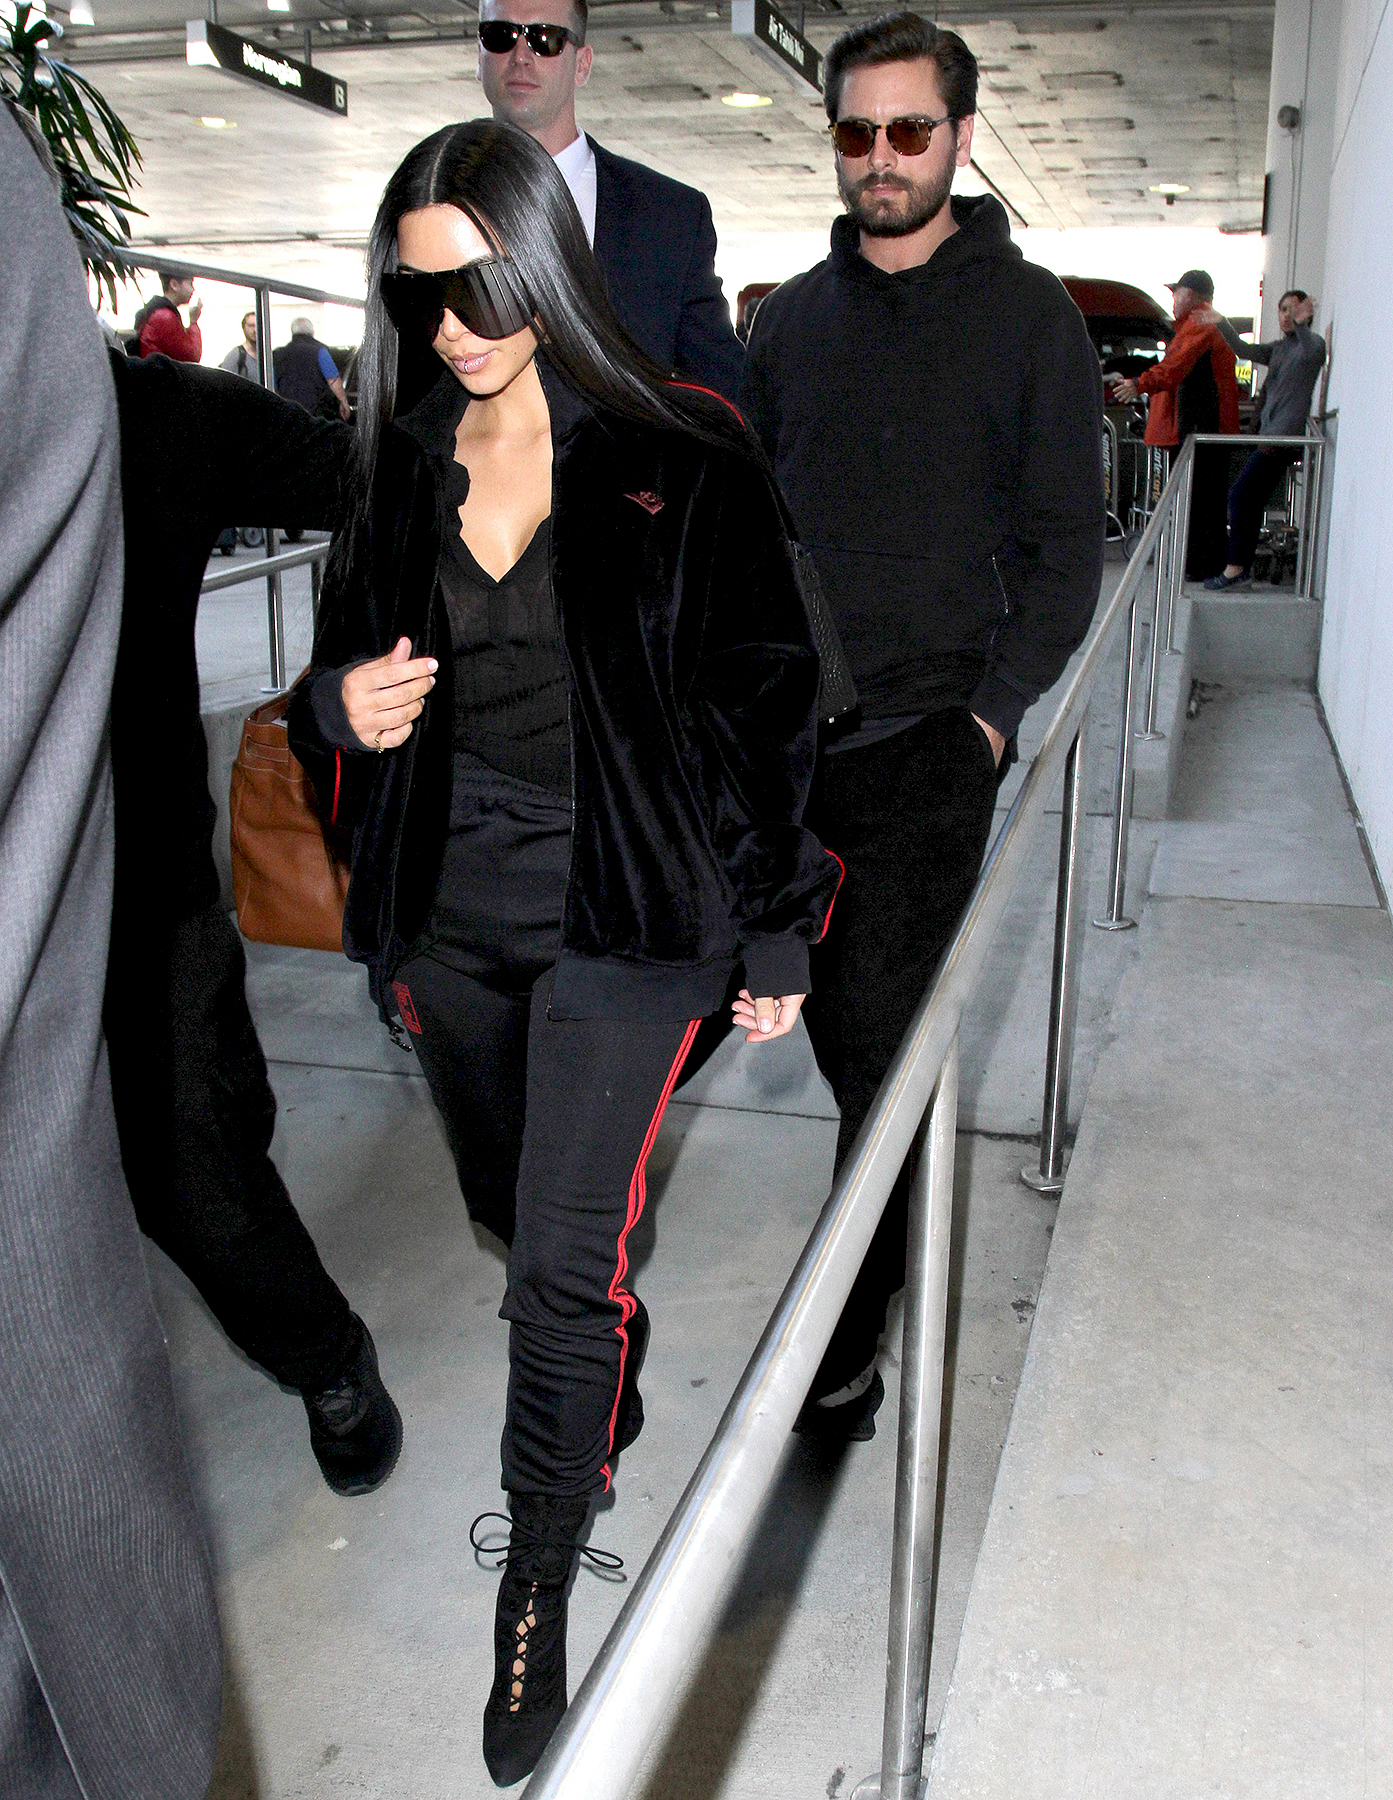 Kim Kardashian at LAX with Scott Disick.